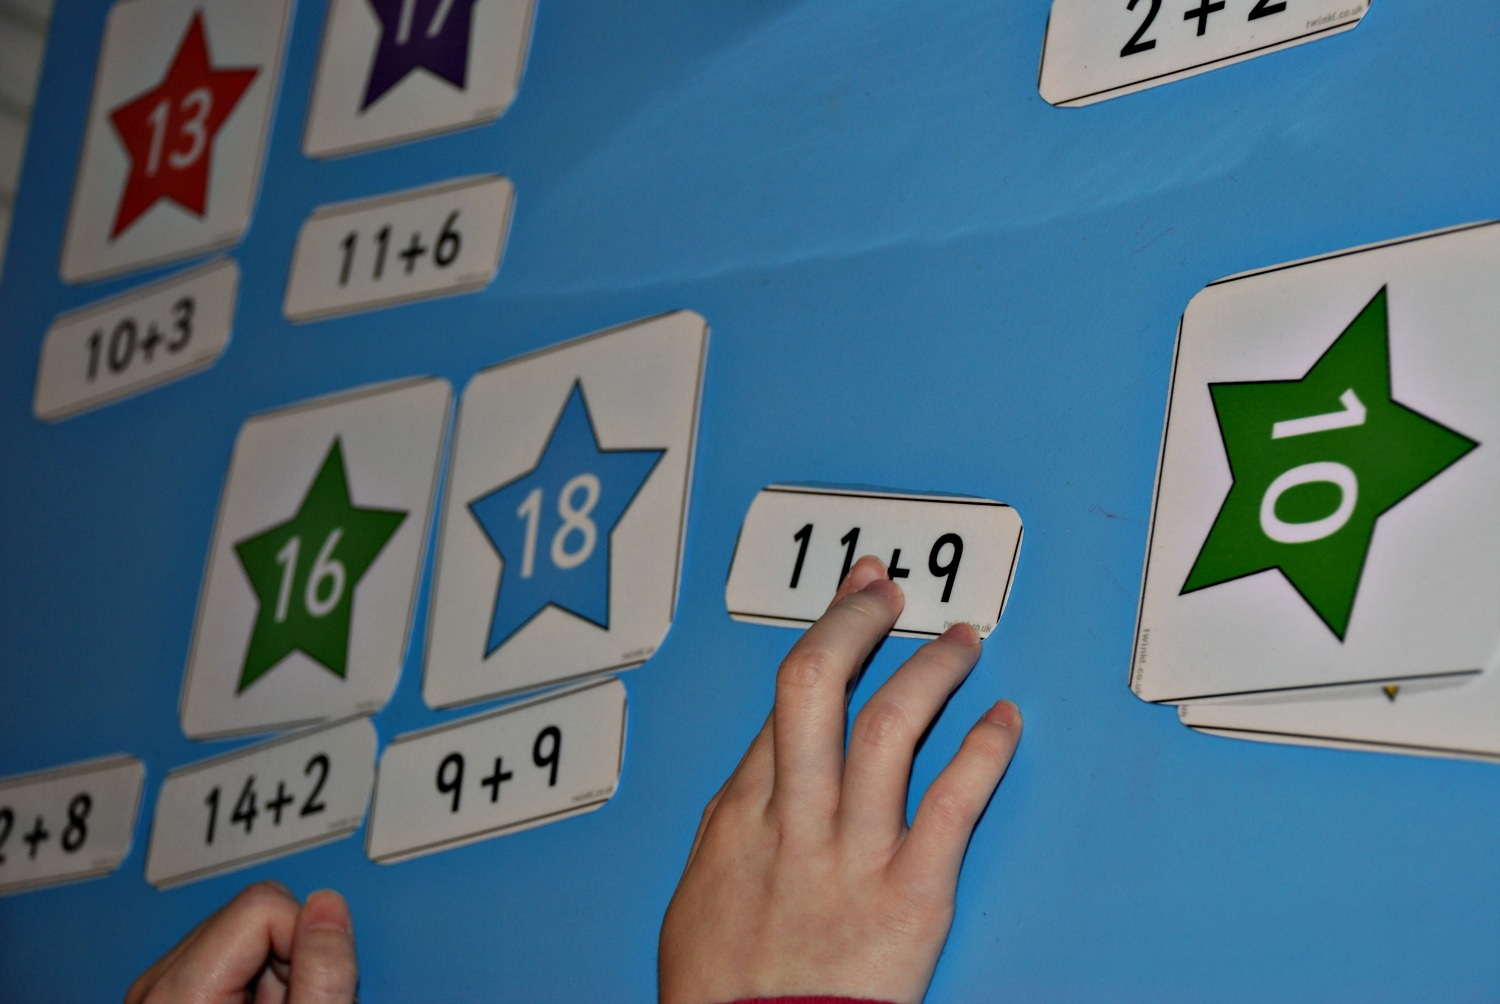 Matching stars maths activity | ofamily learning together